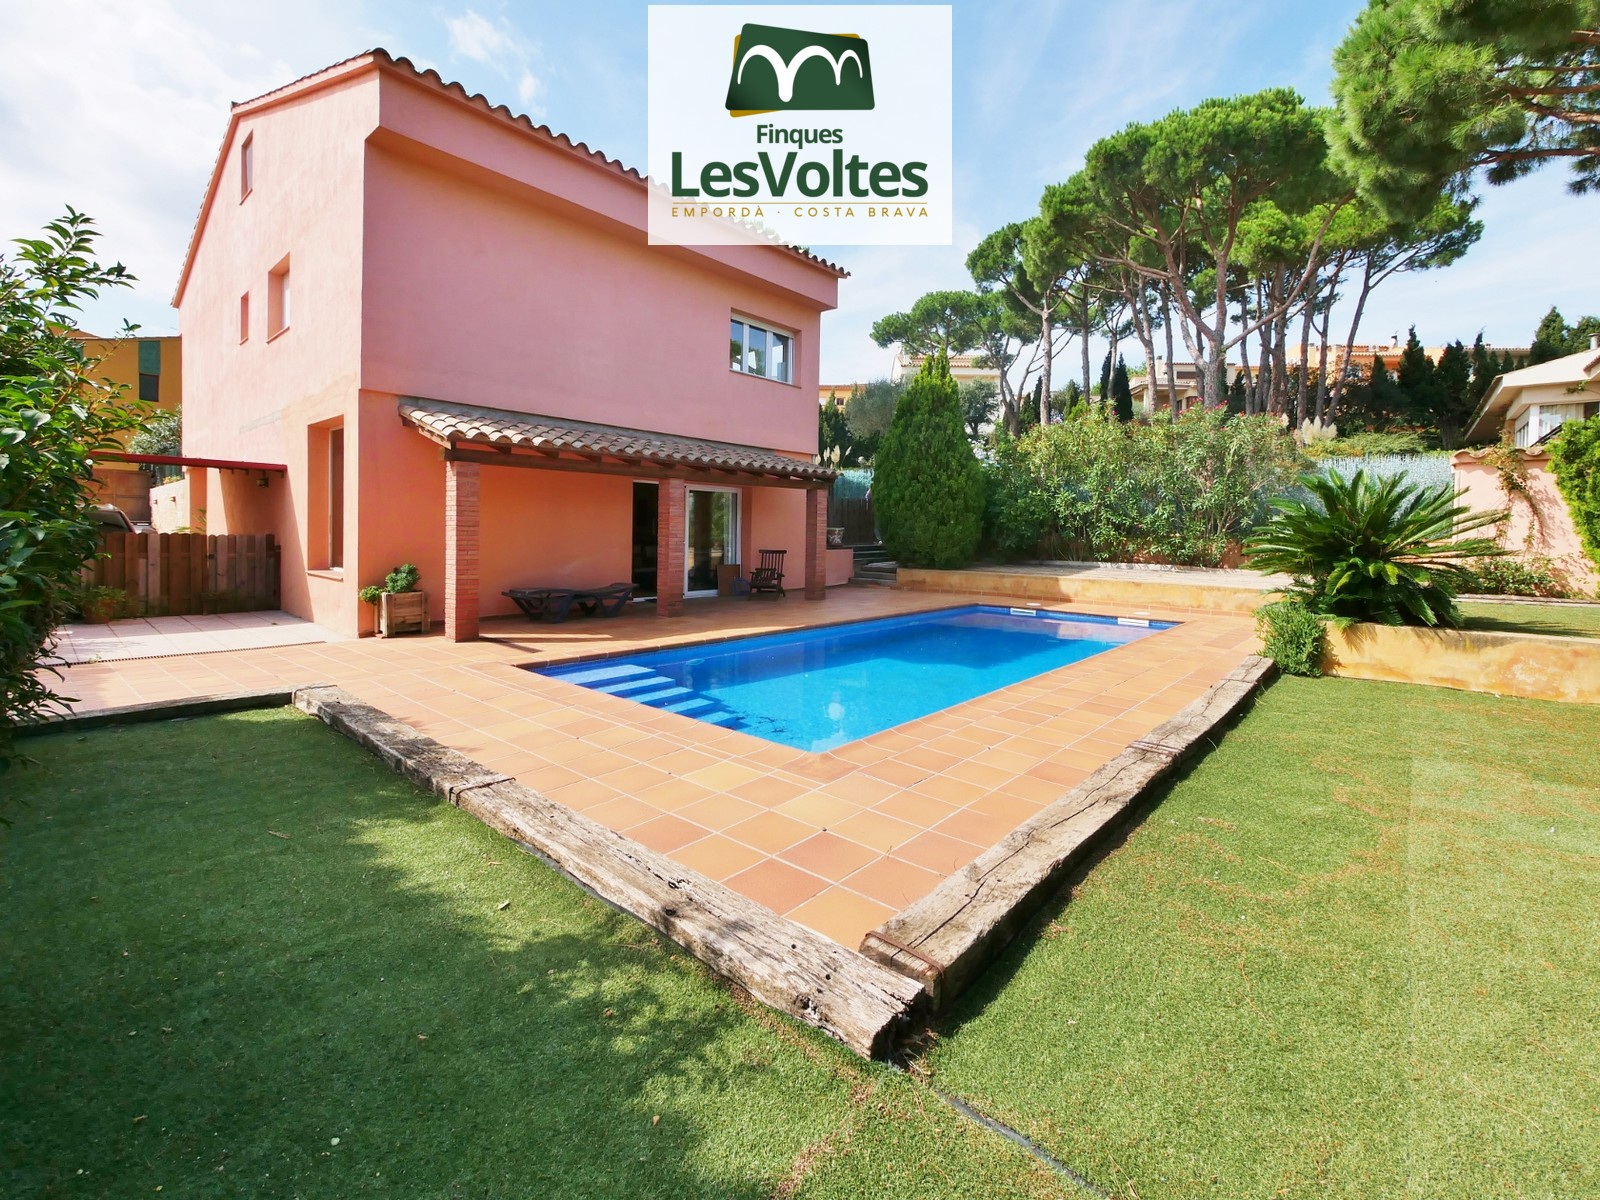 SINGLE FAMILY HOUSE WITH GARDEN AND POOL FOR SALE IN MONT-RAS.